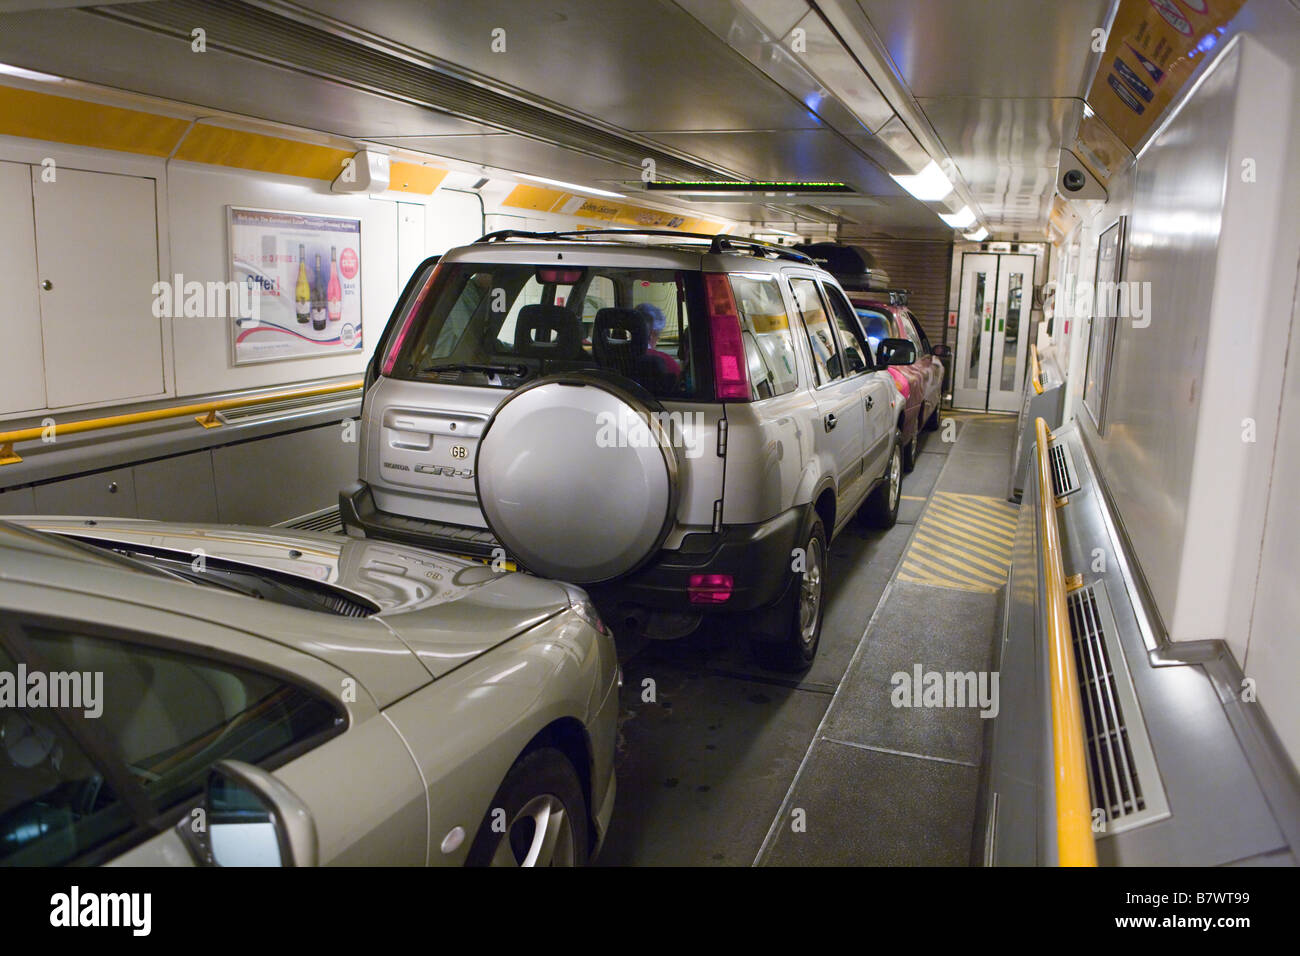 Bus Paris Calais Eurotunnel Stock Photos And Eurotunnel Stock Images Alamy